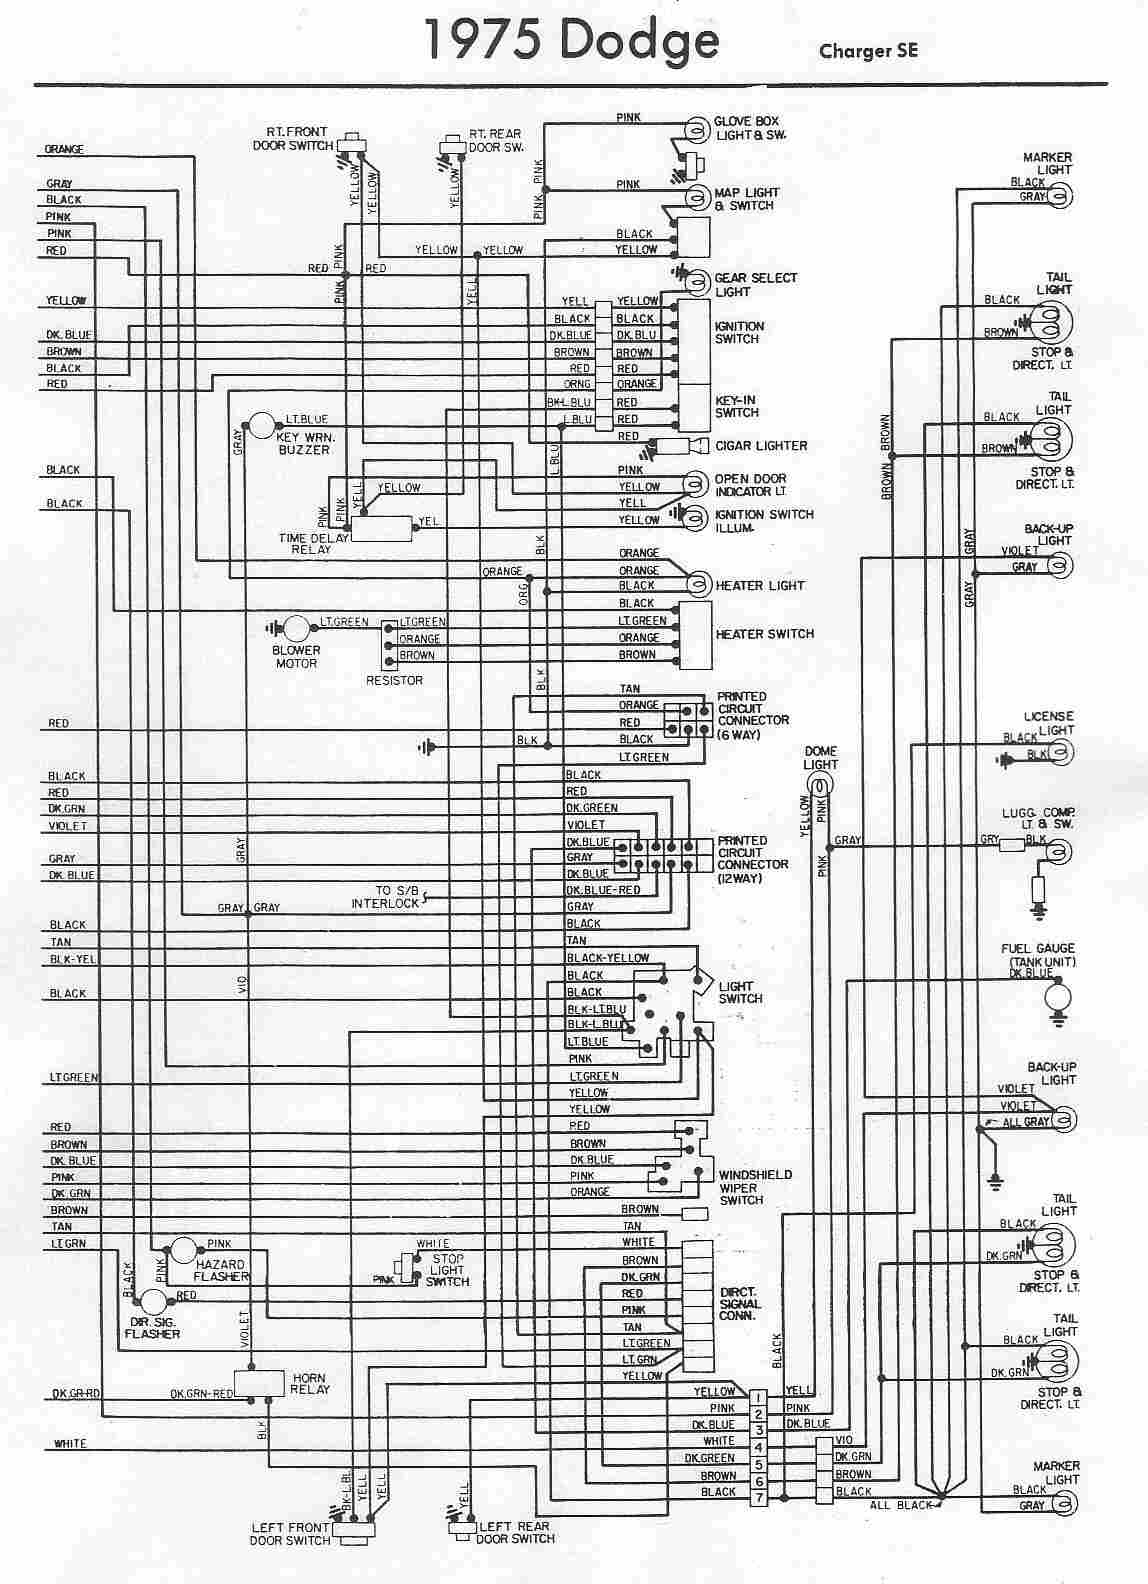 tail lights wiring diagram for 2007 dodge charger best 07 dodge charger wiring diagrams Bleu Brown Black Wires Wiring-Diagram Charger